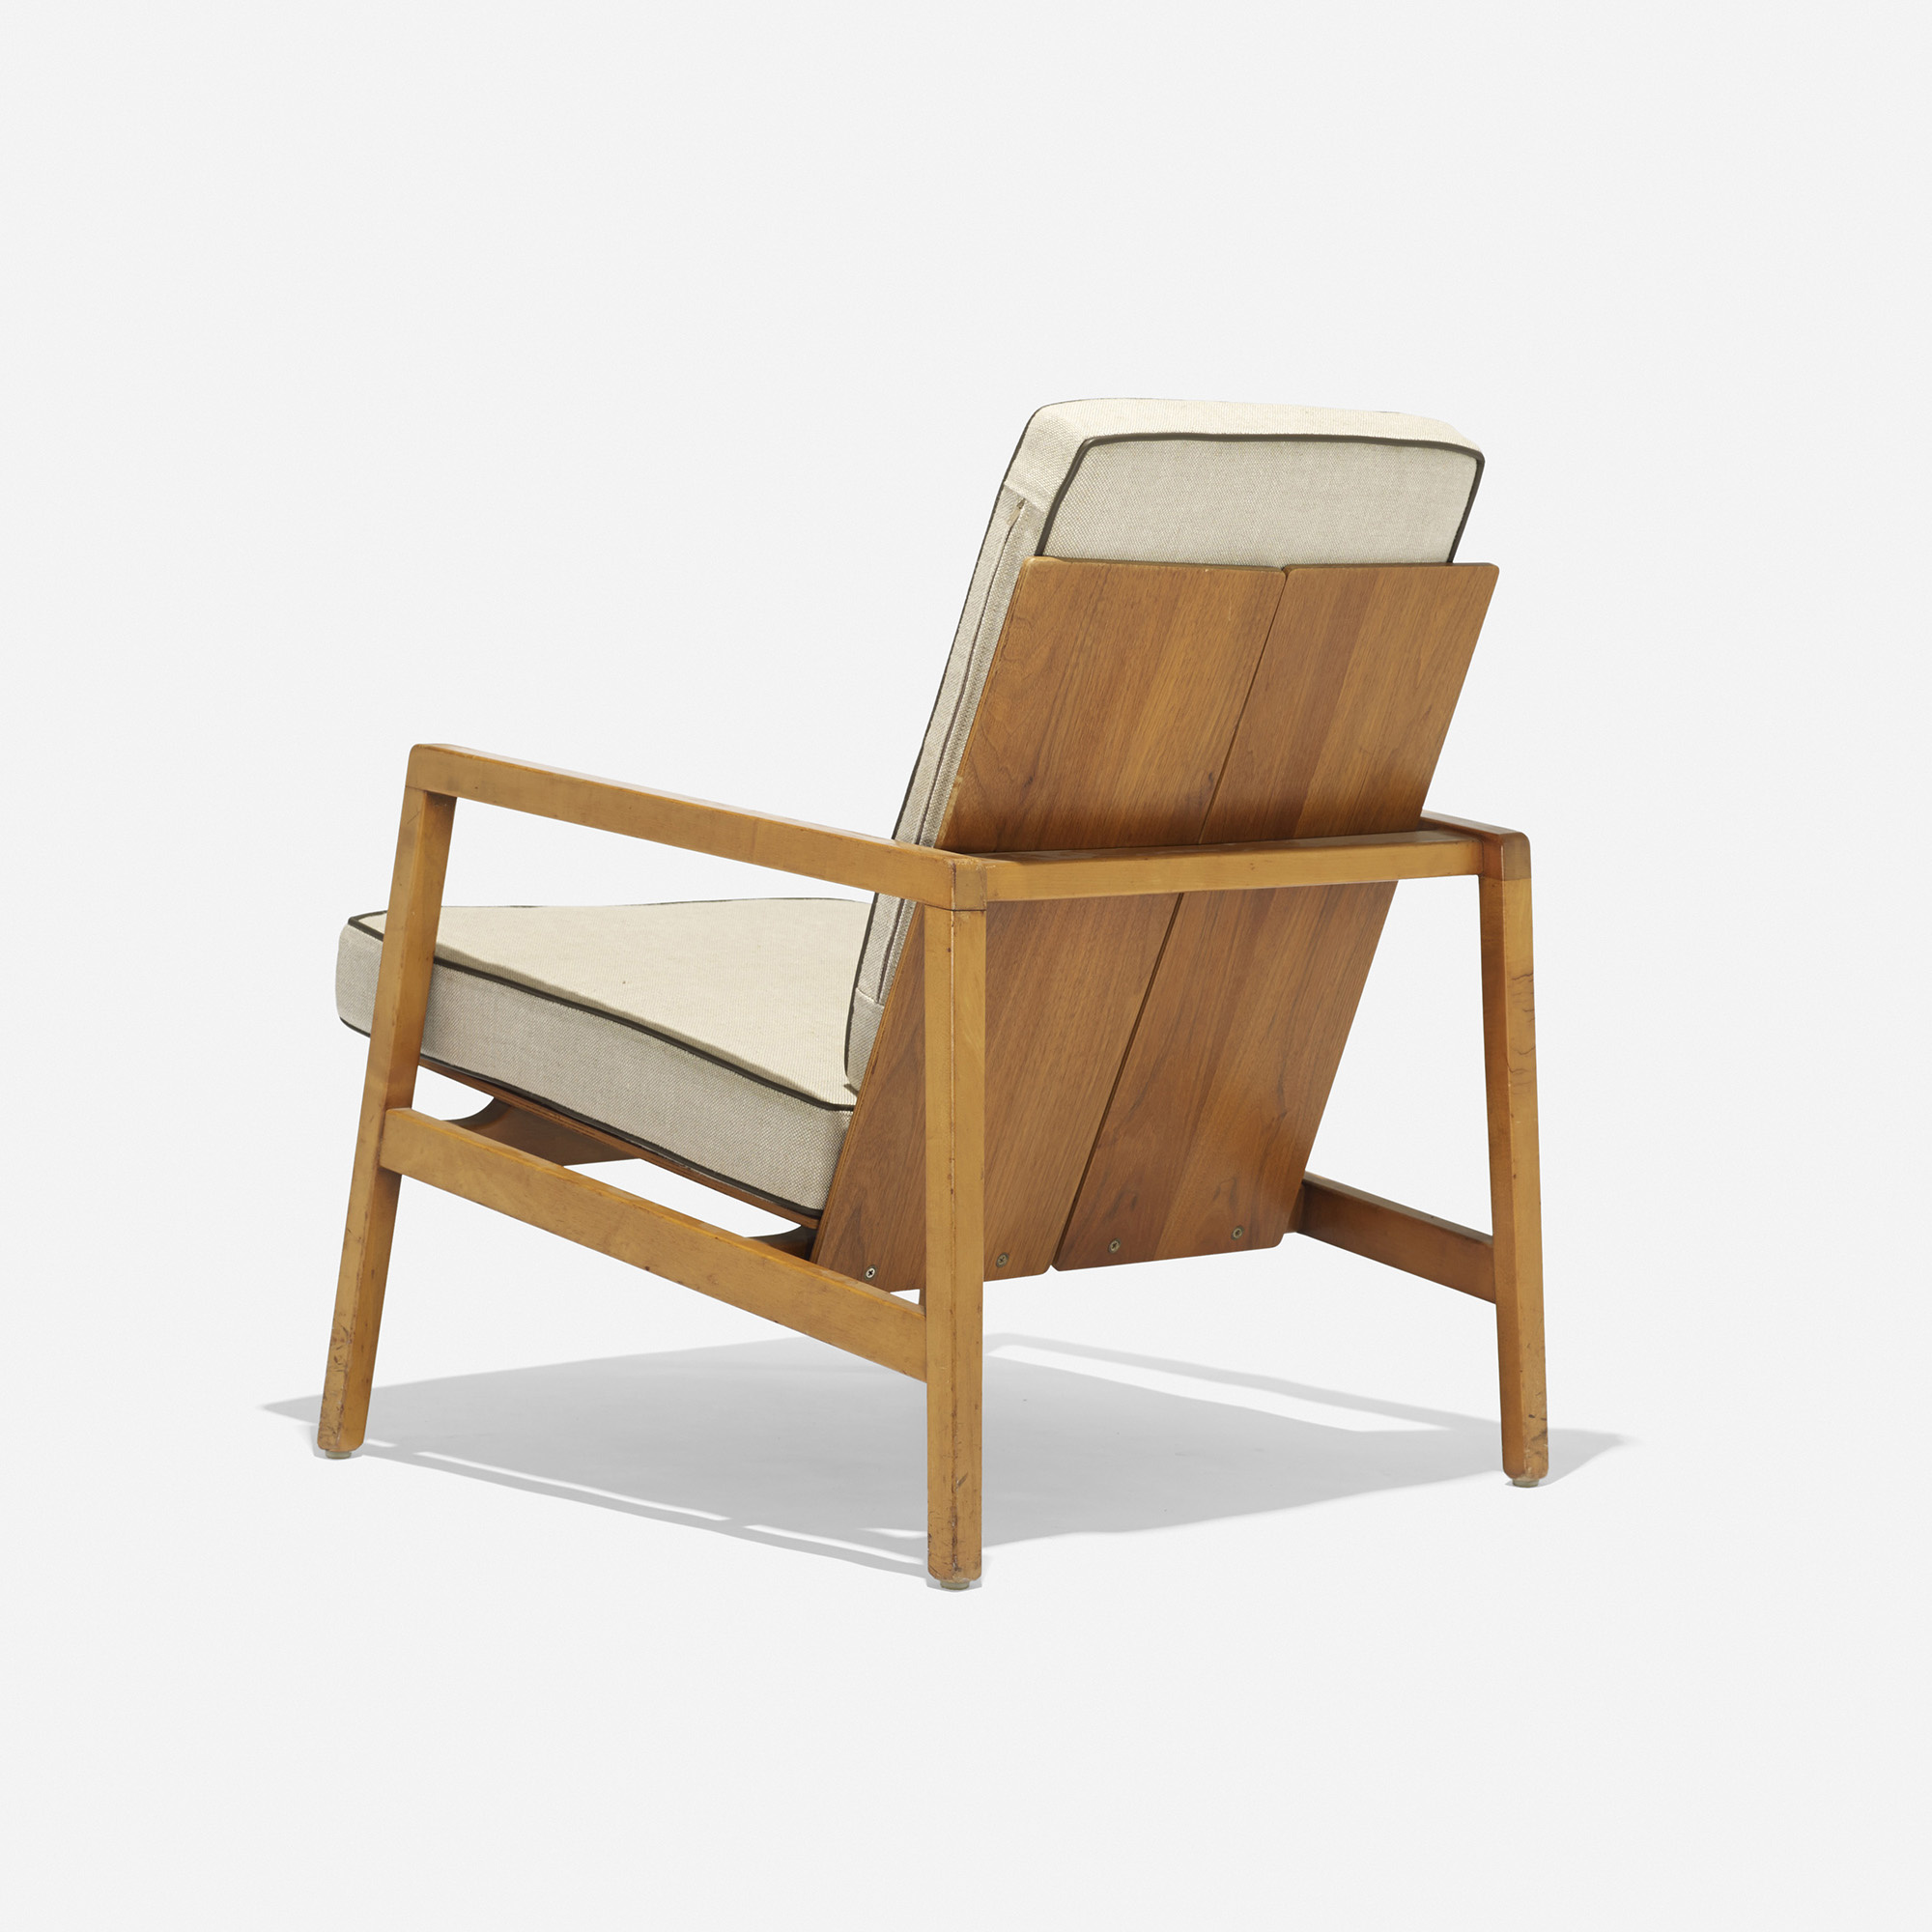 431: Lewis Butler / Lounge Chair (1 Of 7)